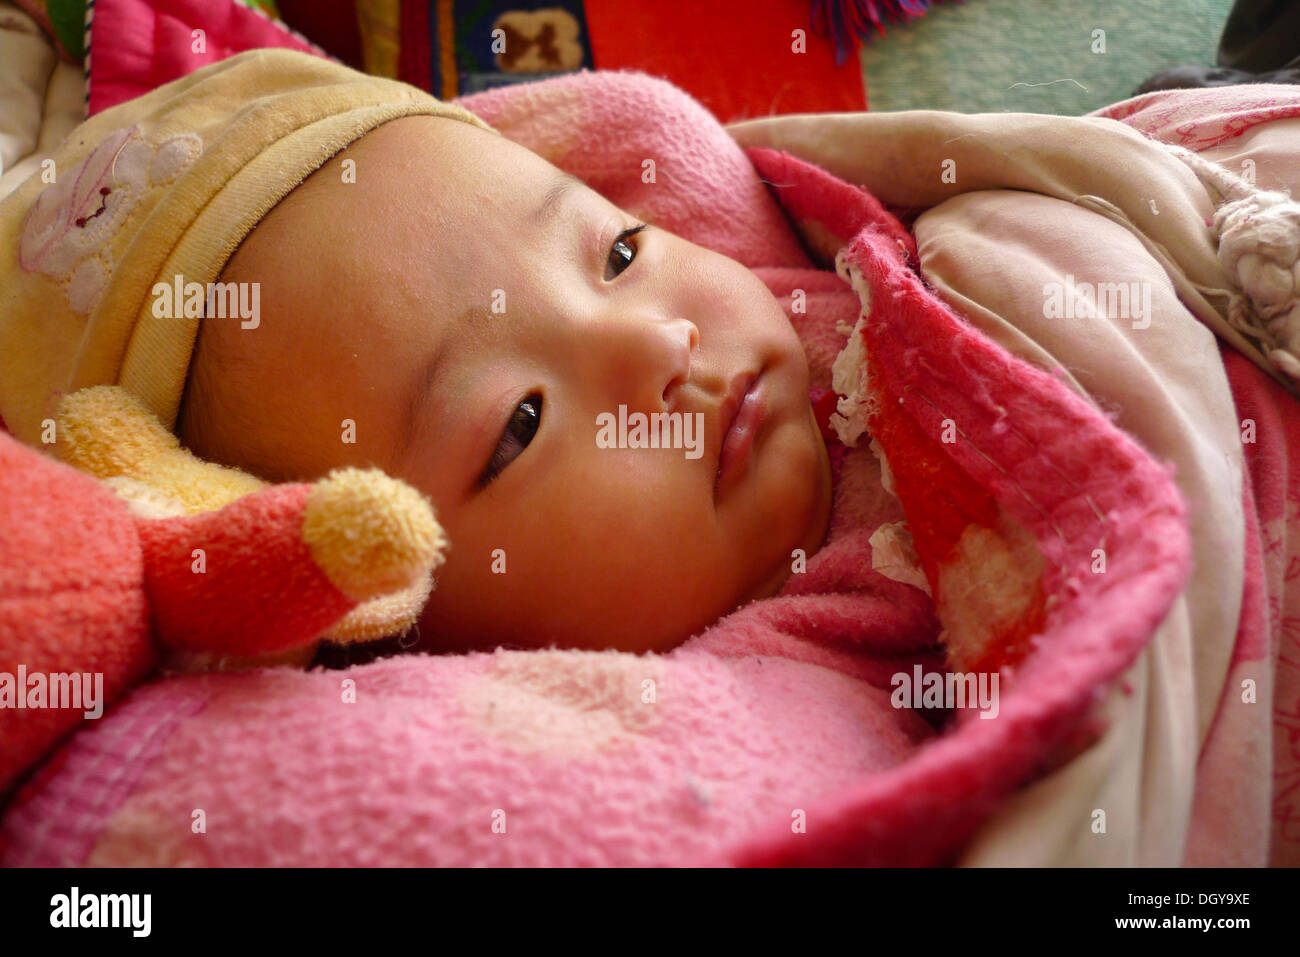 Young baby, few months, little girl, warmly wrapped in thick blankets, Manasarovar Lake, Western Tibet, Ngari province, Tibet - Stock Image